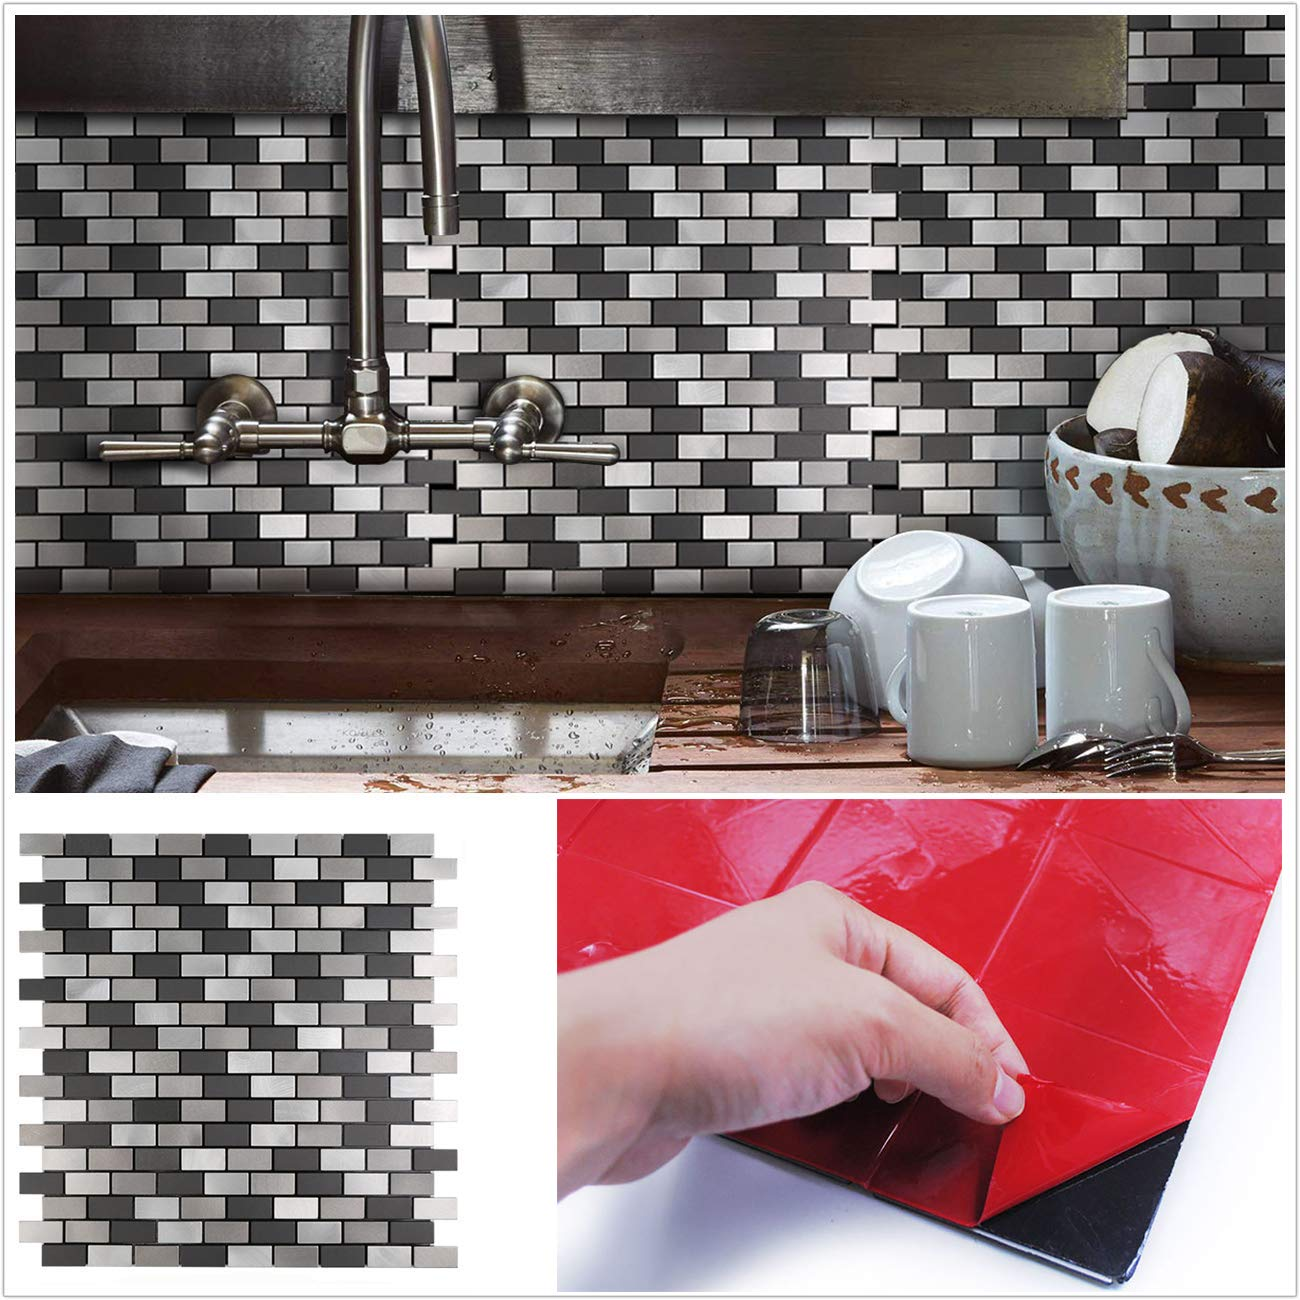 HomeyStyle Black&Grey Subway Stripe Peel and Stick Tile Metal Backsplash for Kitchen Bathroom Stove Walls Self-Adhesive Aluminum Surface Metal Mosaic Tiles 3D Wall Sticker,Pack of 5 Tiles 12''x12'' by HomeyStyle